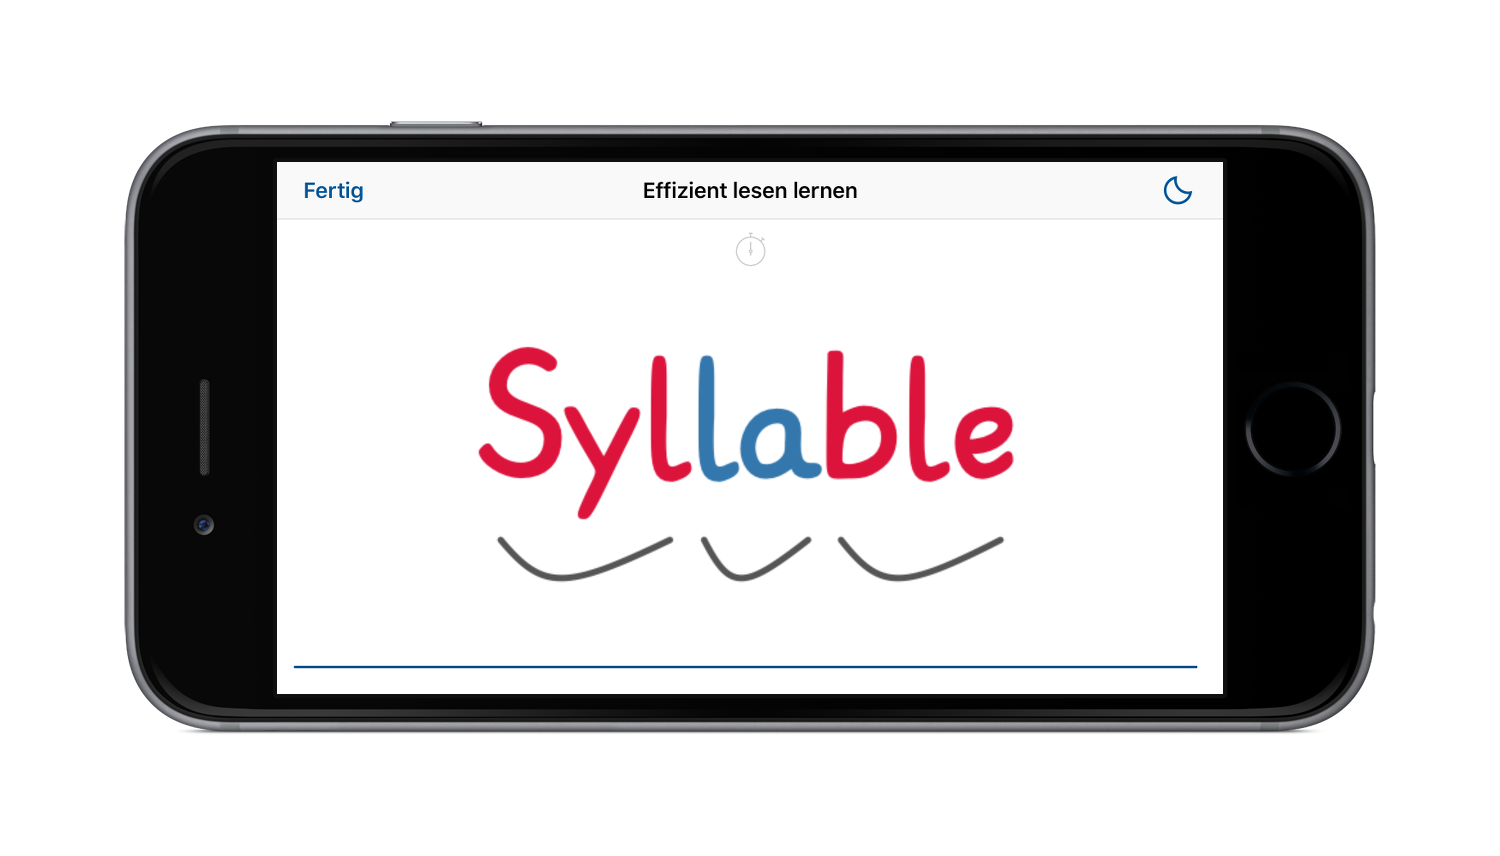 iPhone showing Syl·la·ble